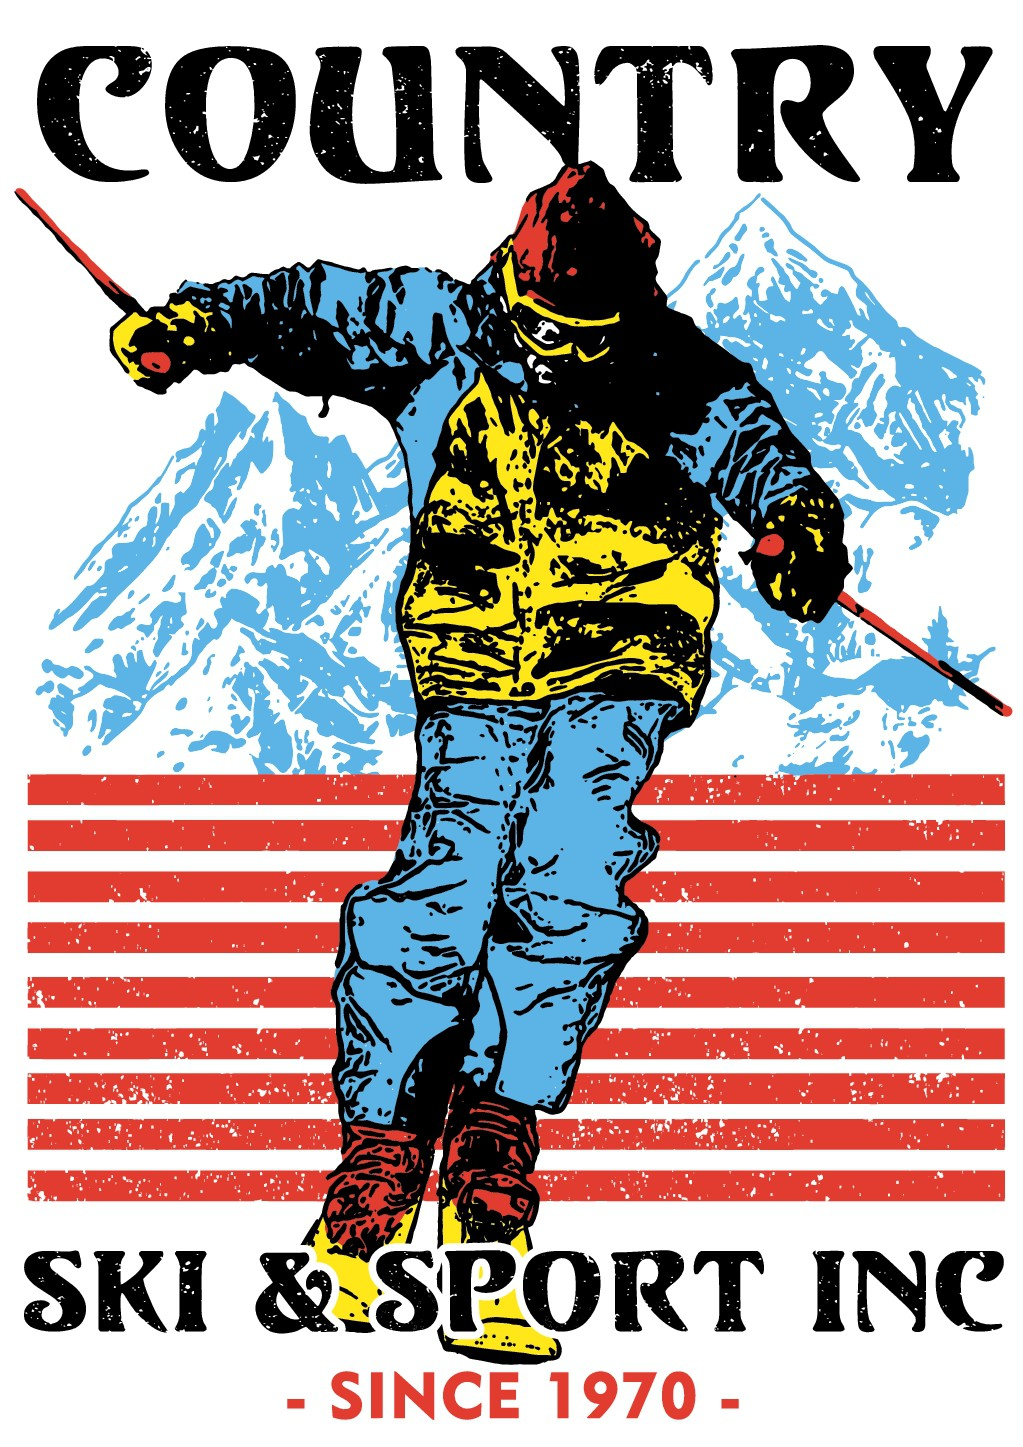 Ski Shop Needs a T-shirt that every skier will want!